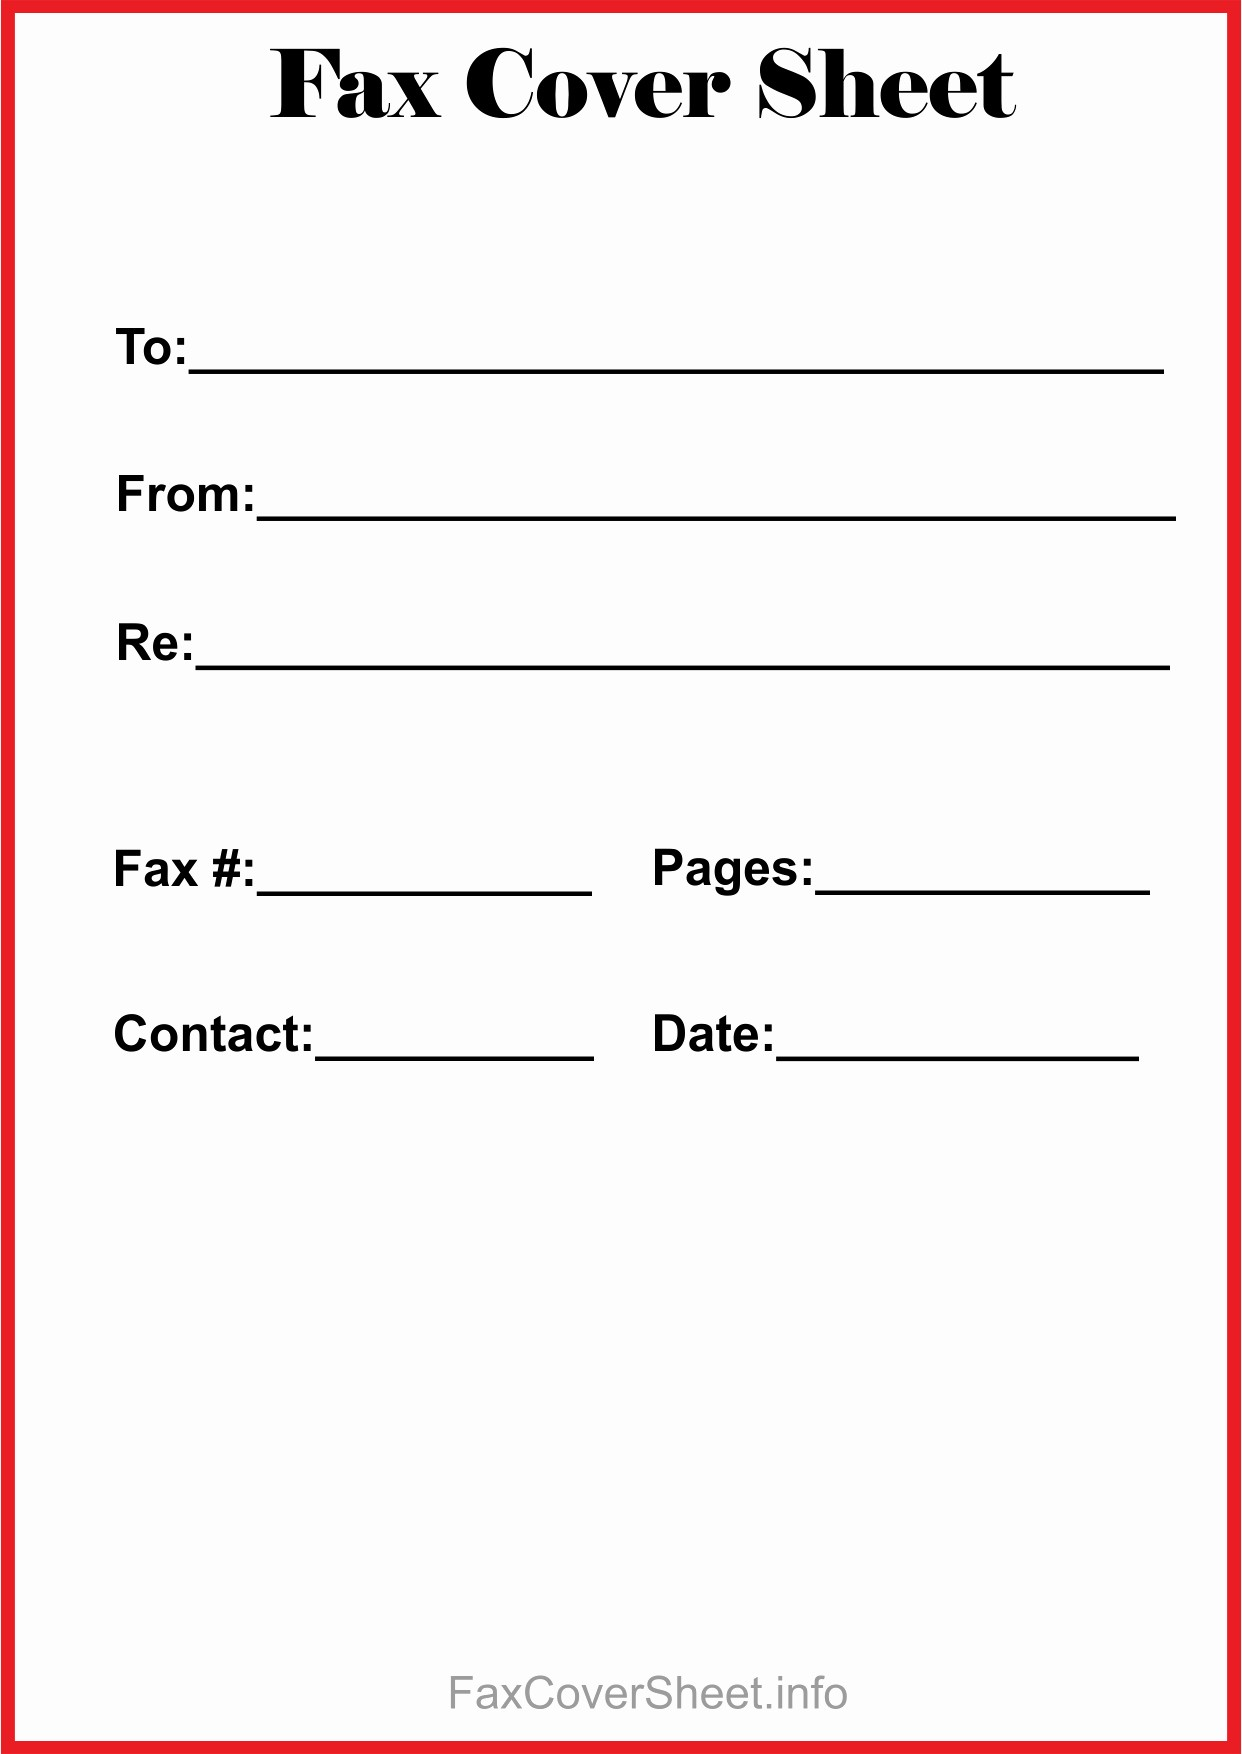 Standard Fax Cover Sheet Pdf Unique Free Fax Cover Sheet Template Download